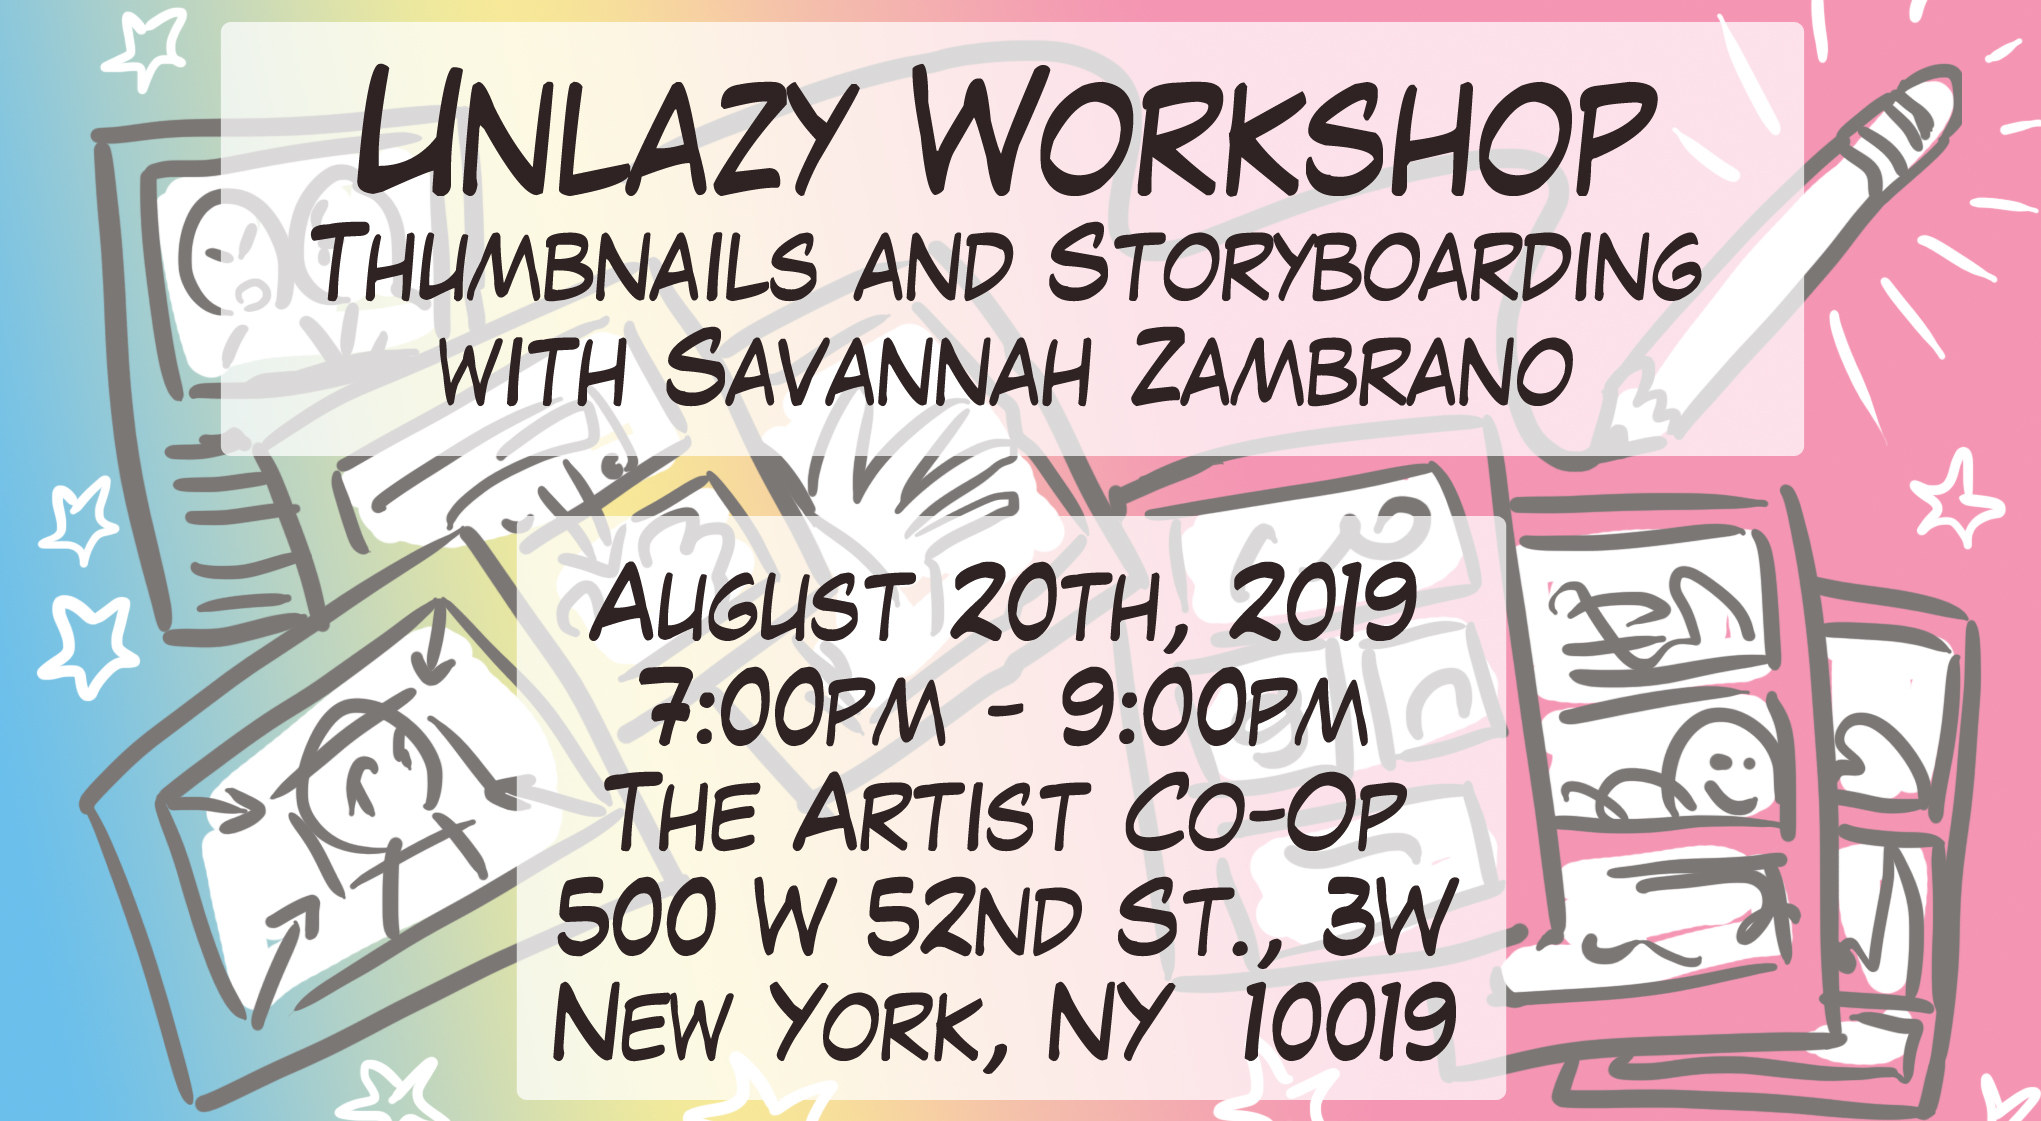 08/06/2019 – Unlazy Workshop 3